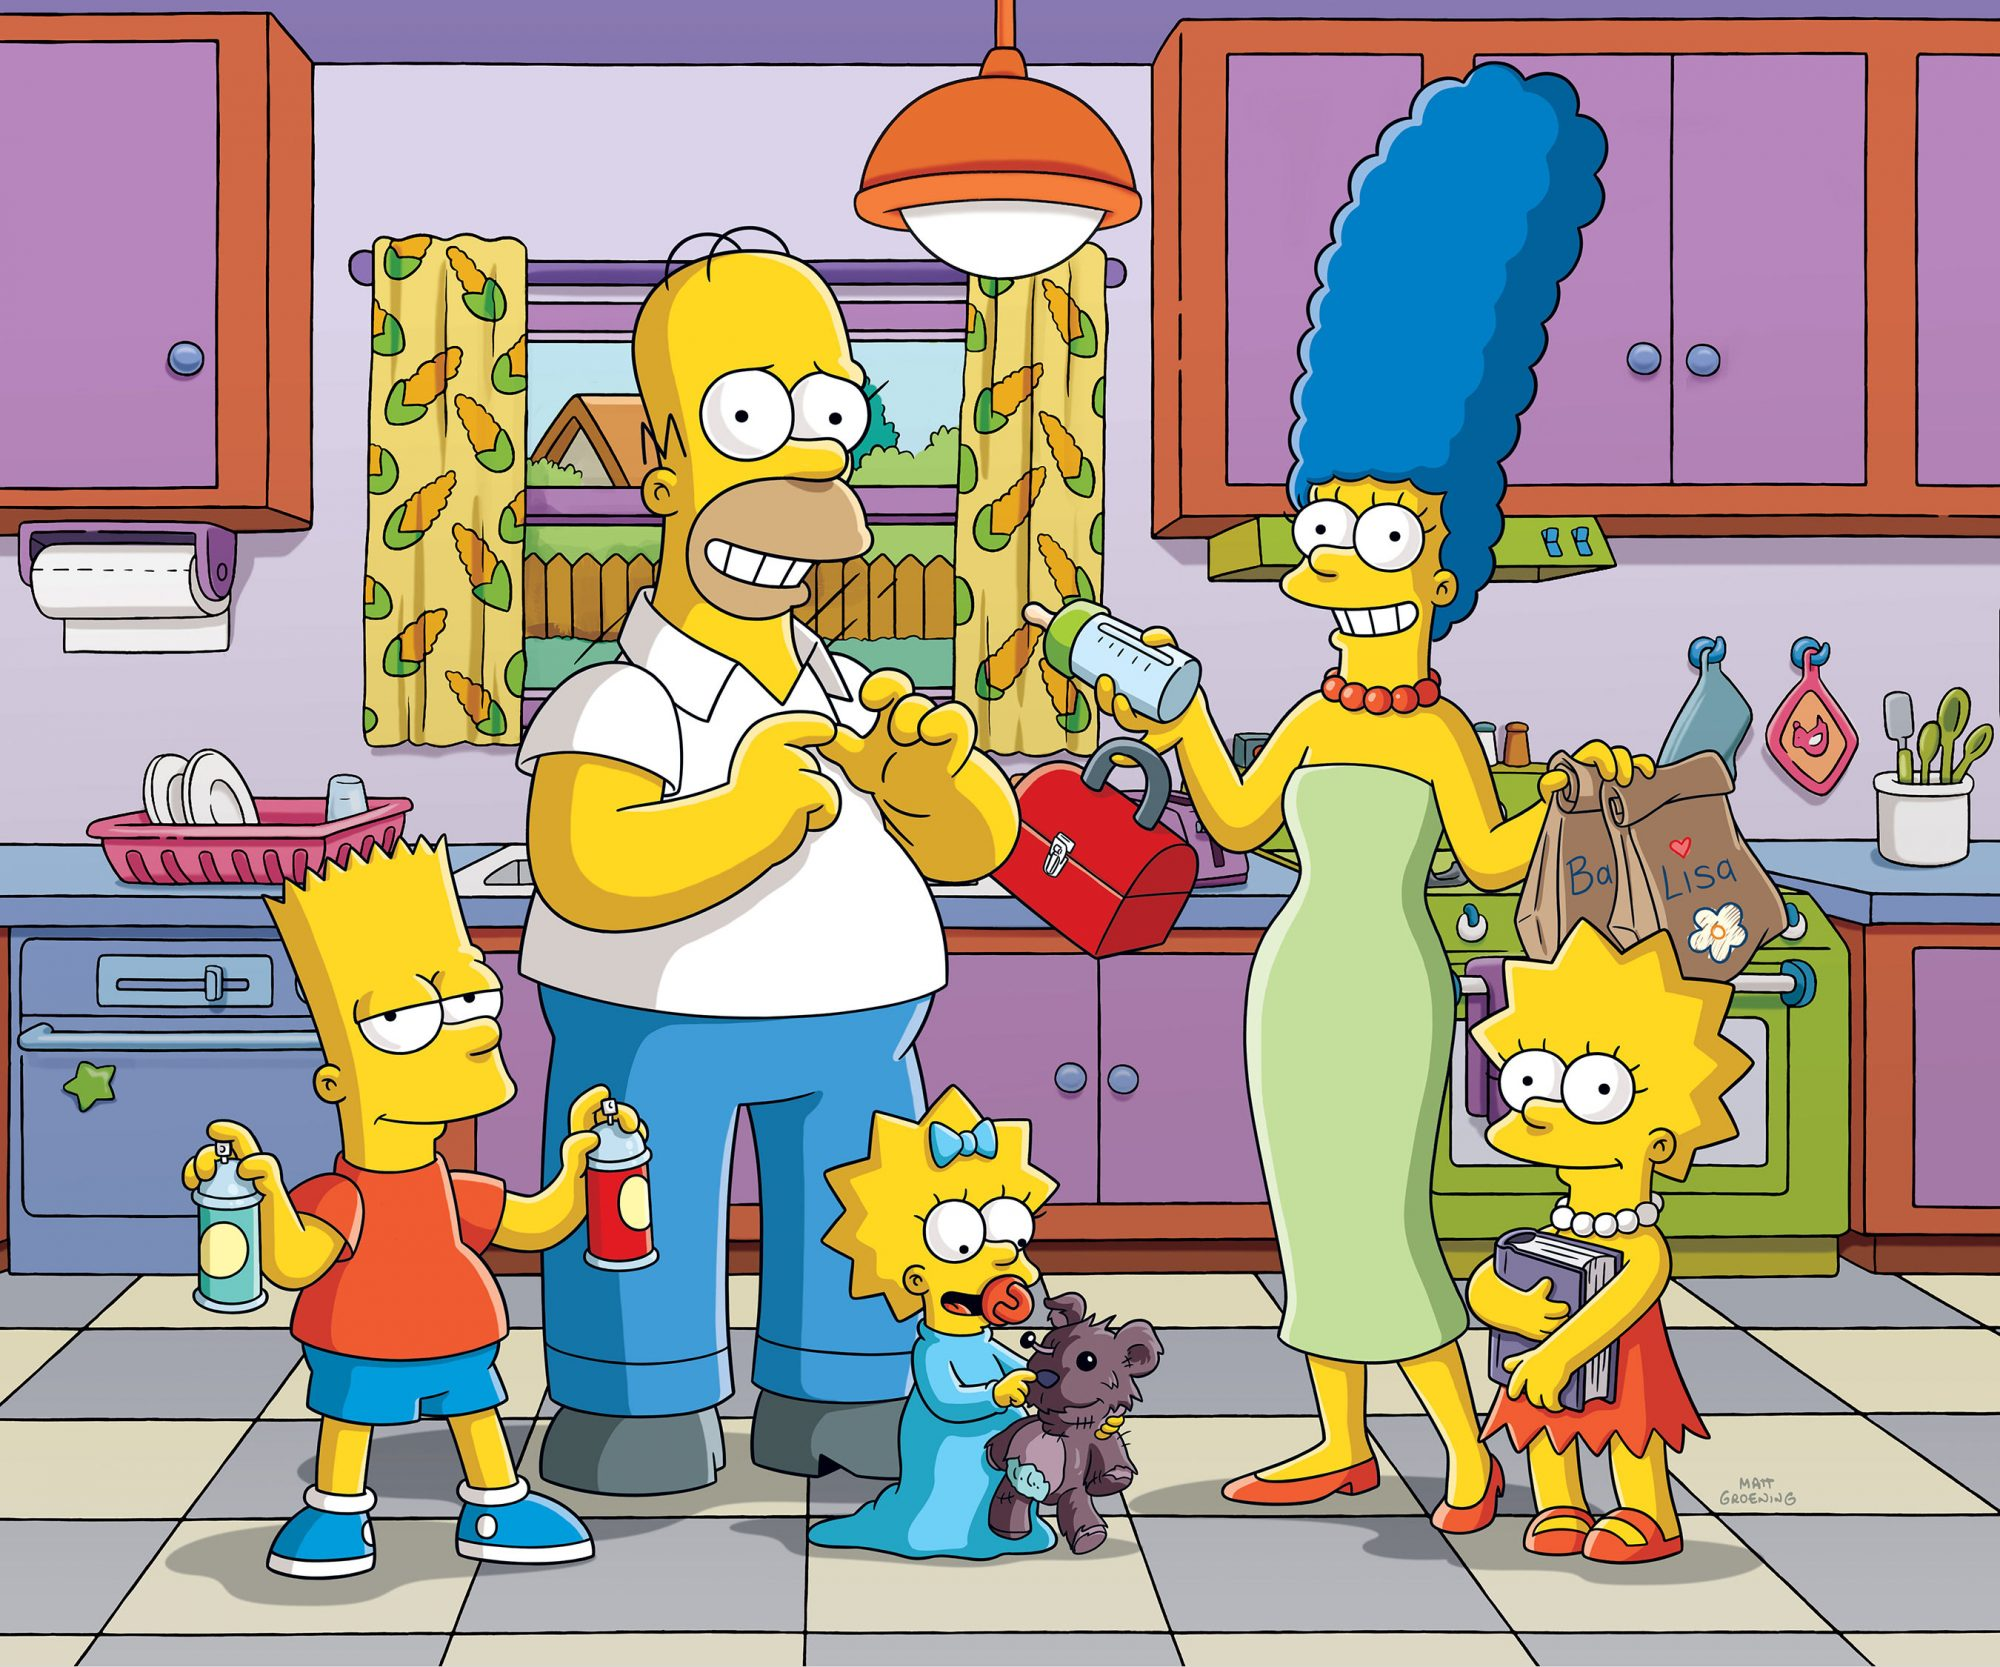 TheSimpsons_2017GenericArt_R2_hires2